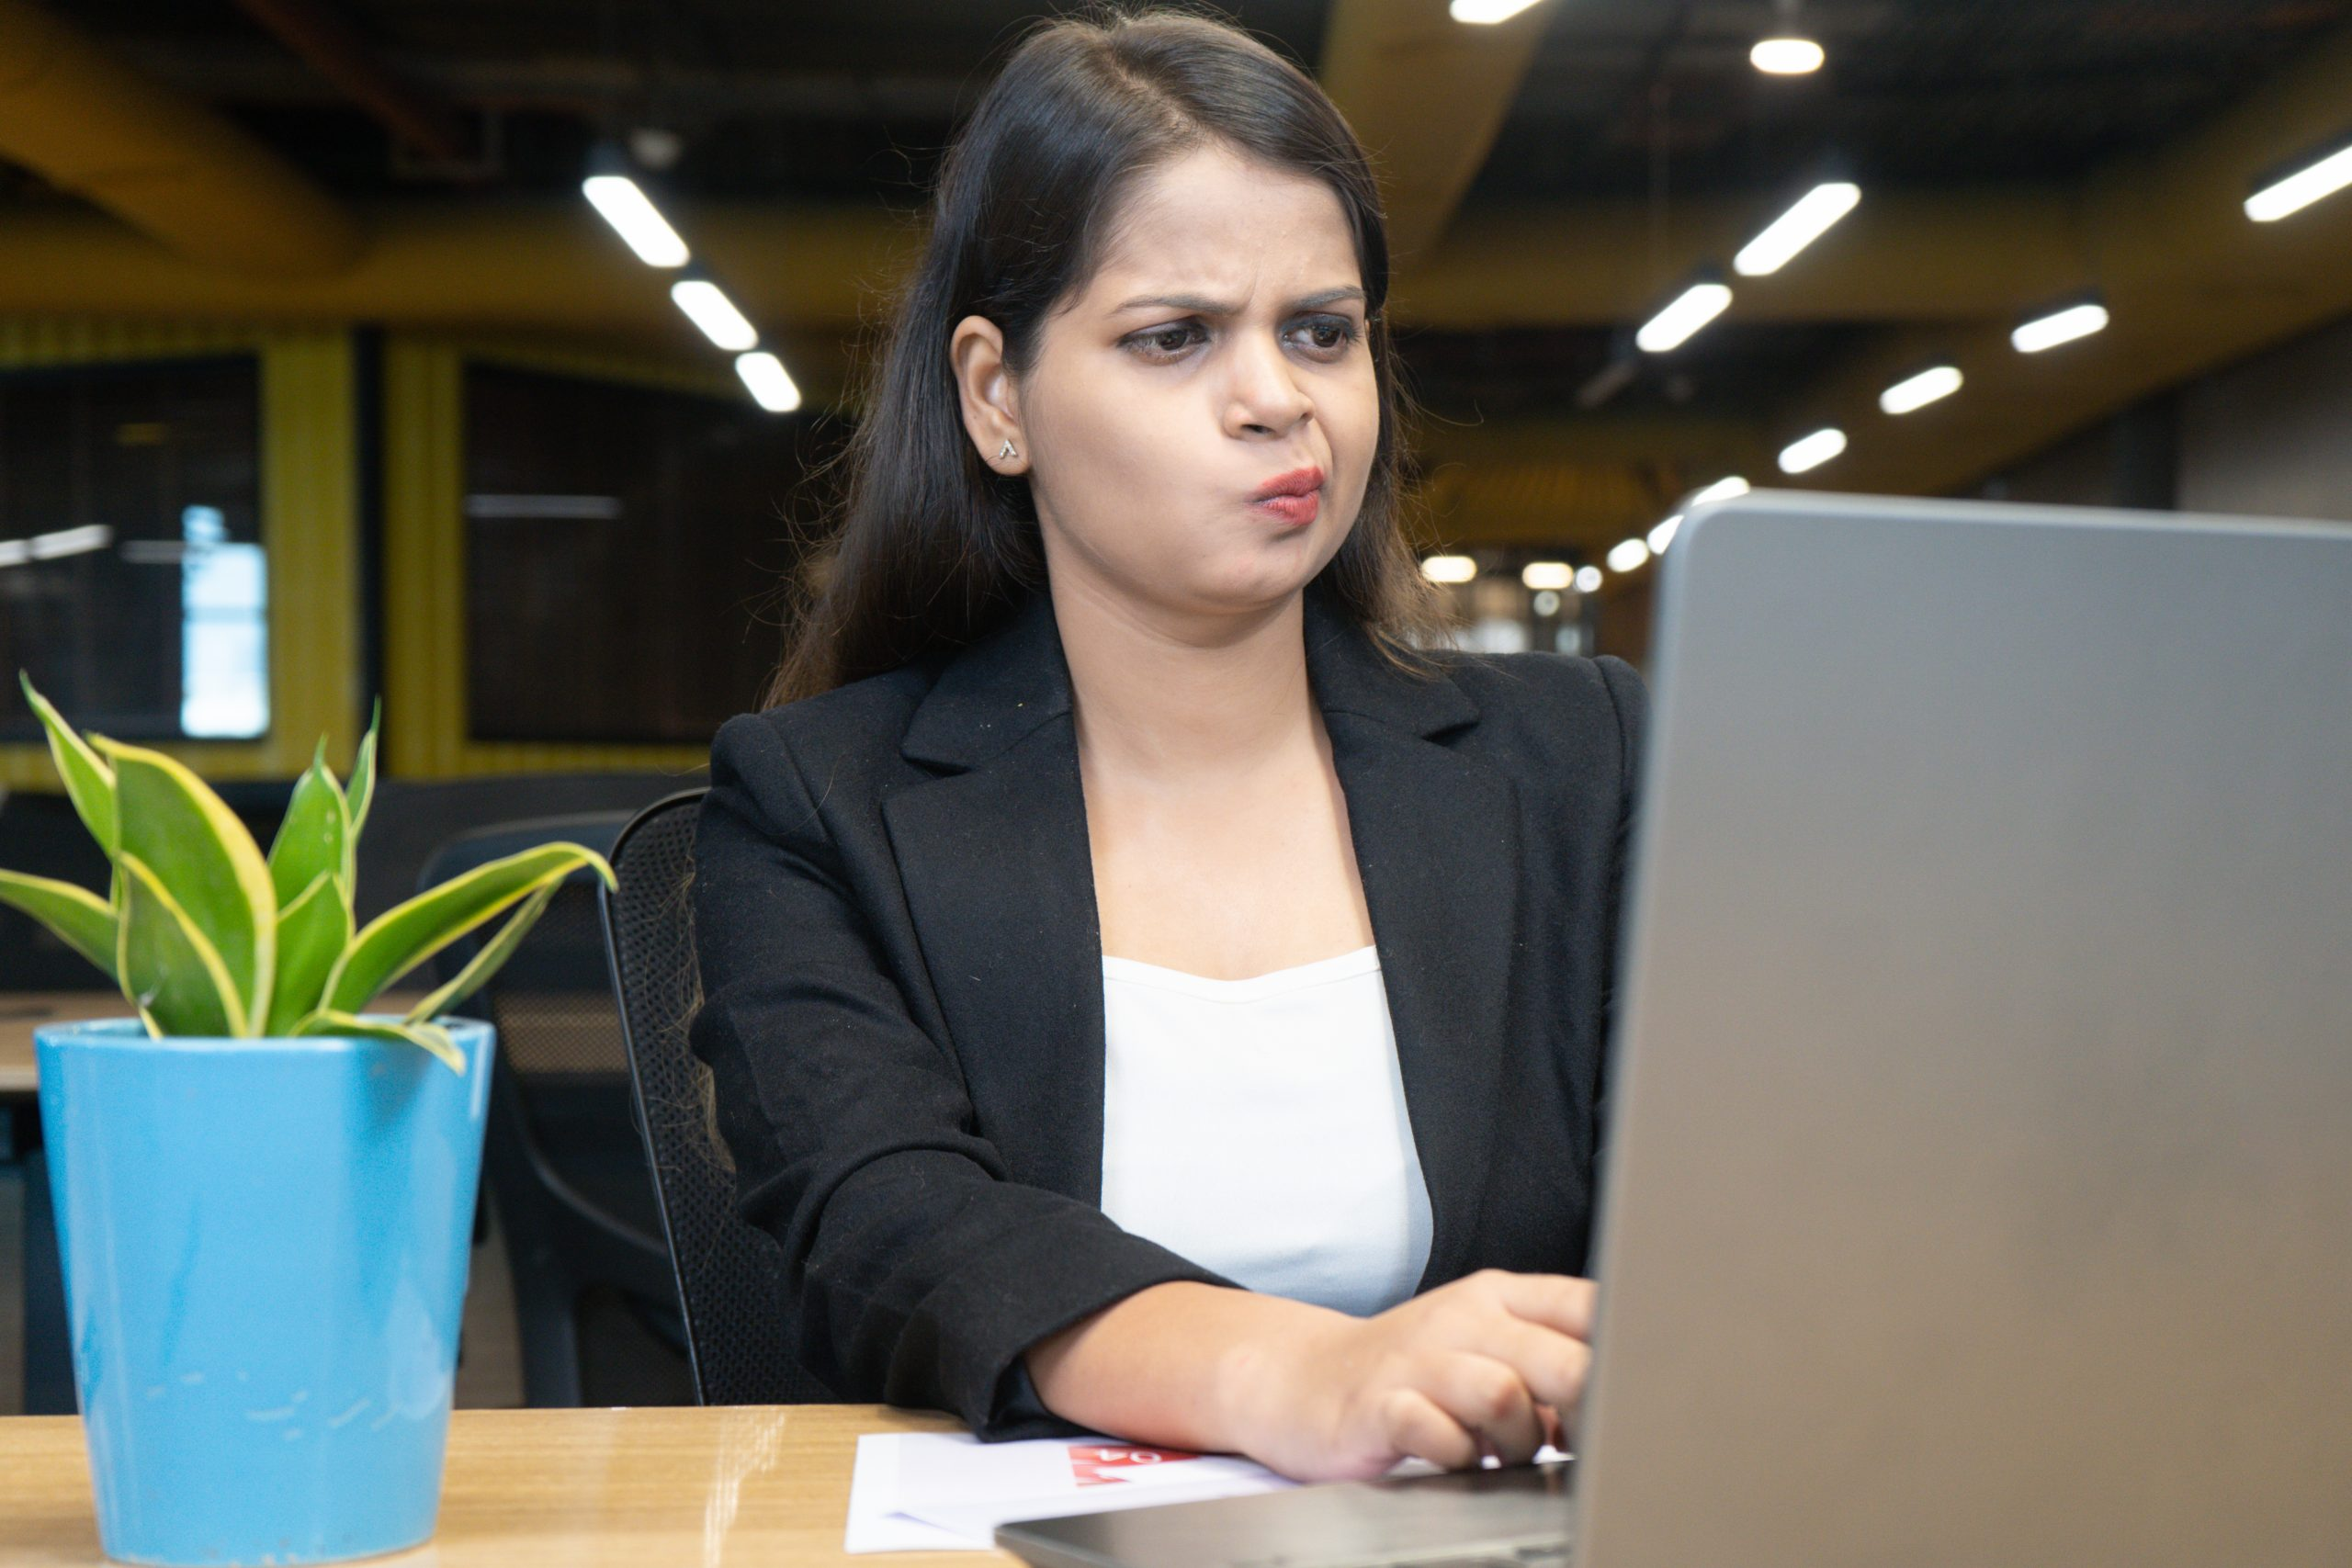 Girl unhappy with the work